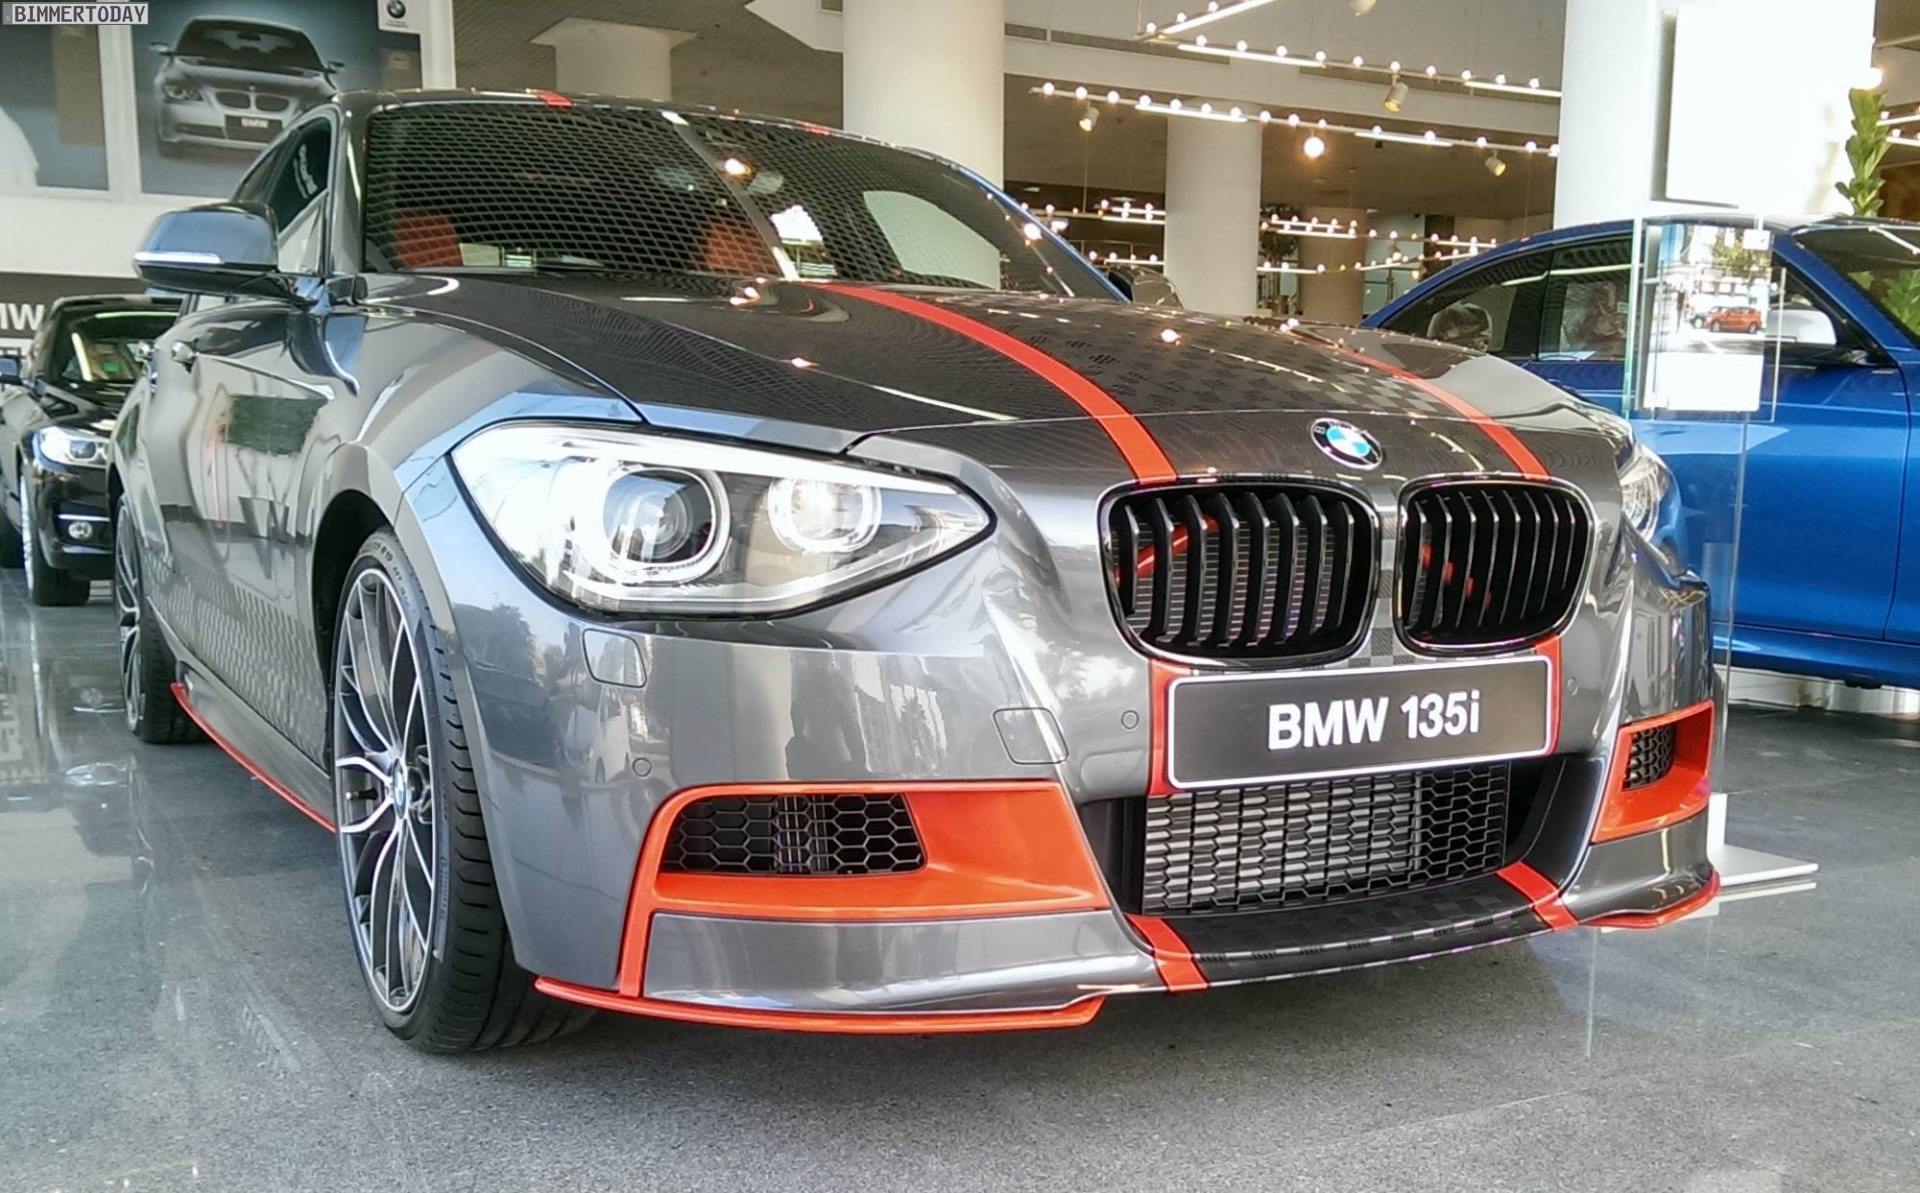 bmw abu dhabi bmw m135i f20 als m performance special edition - Auto Folieren Muster